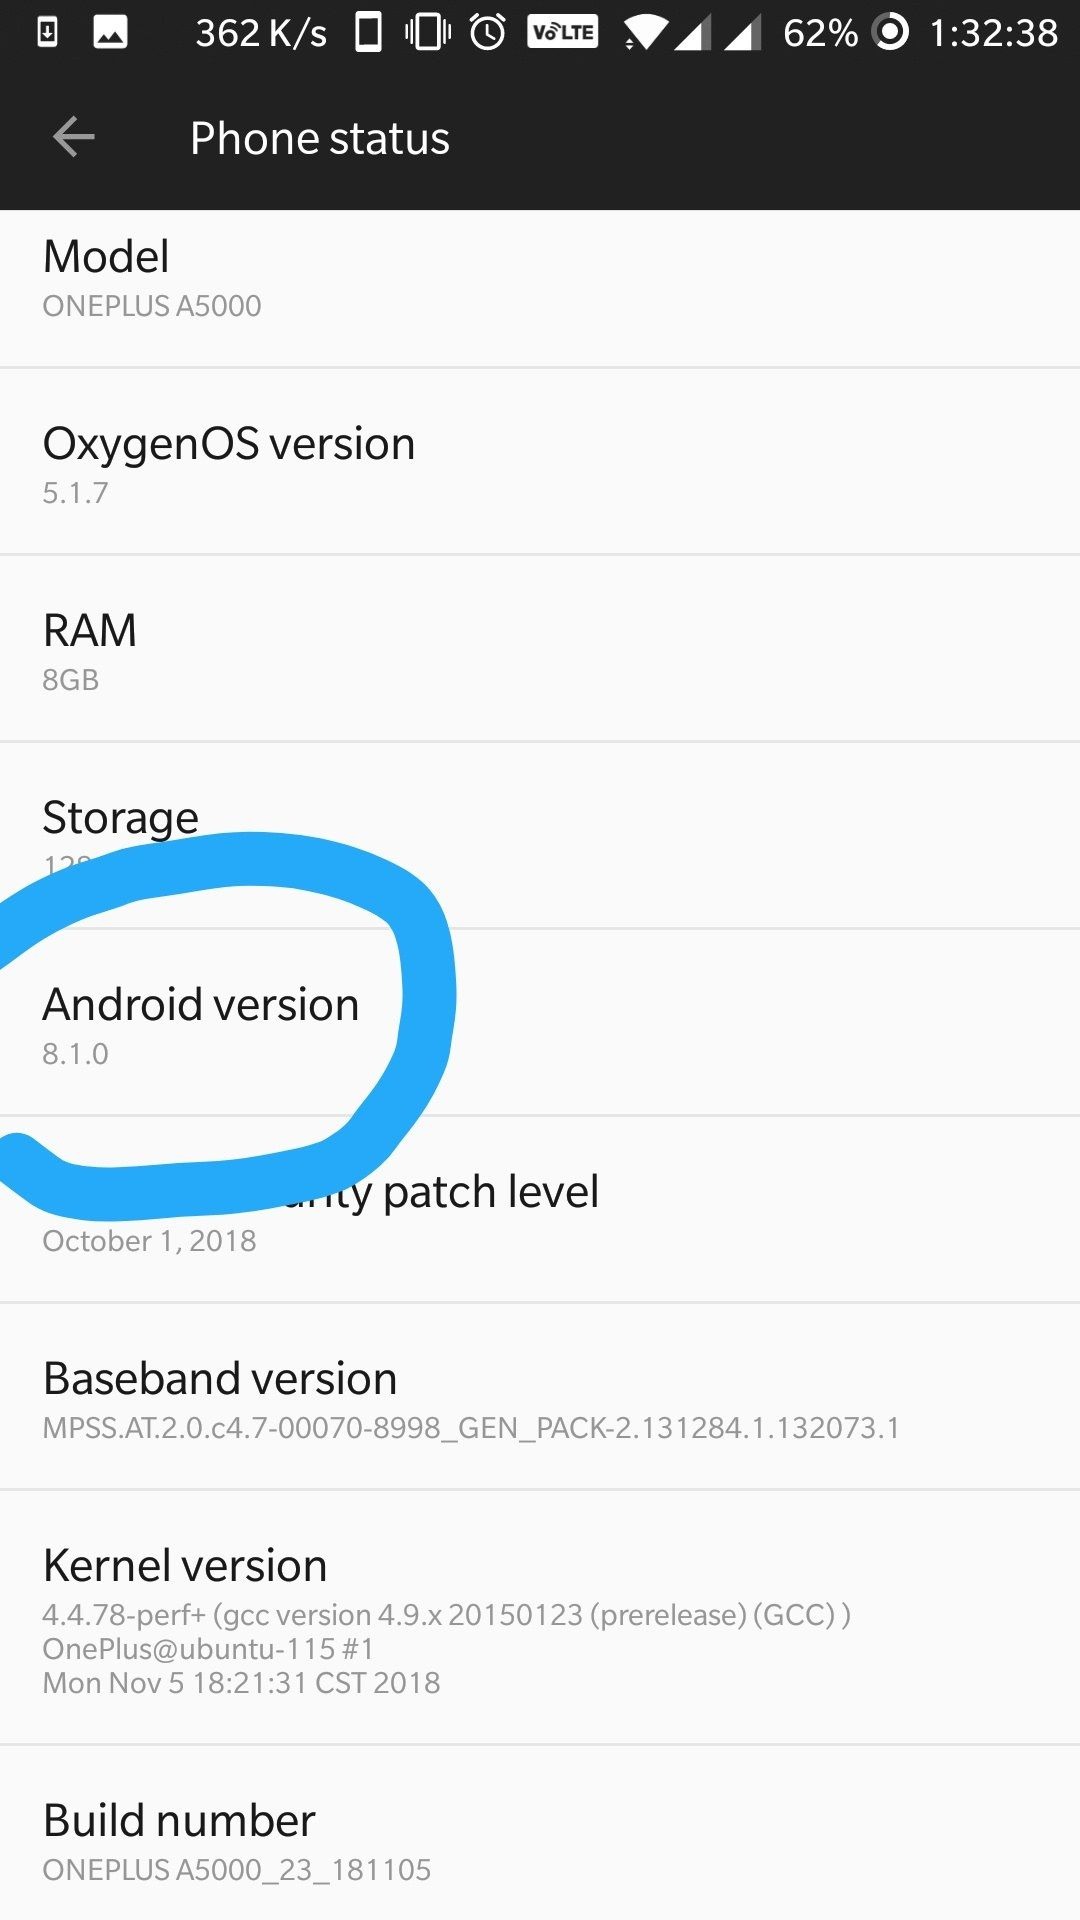 How To Upgrade My Android Kernel Version nexus 5 How can I